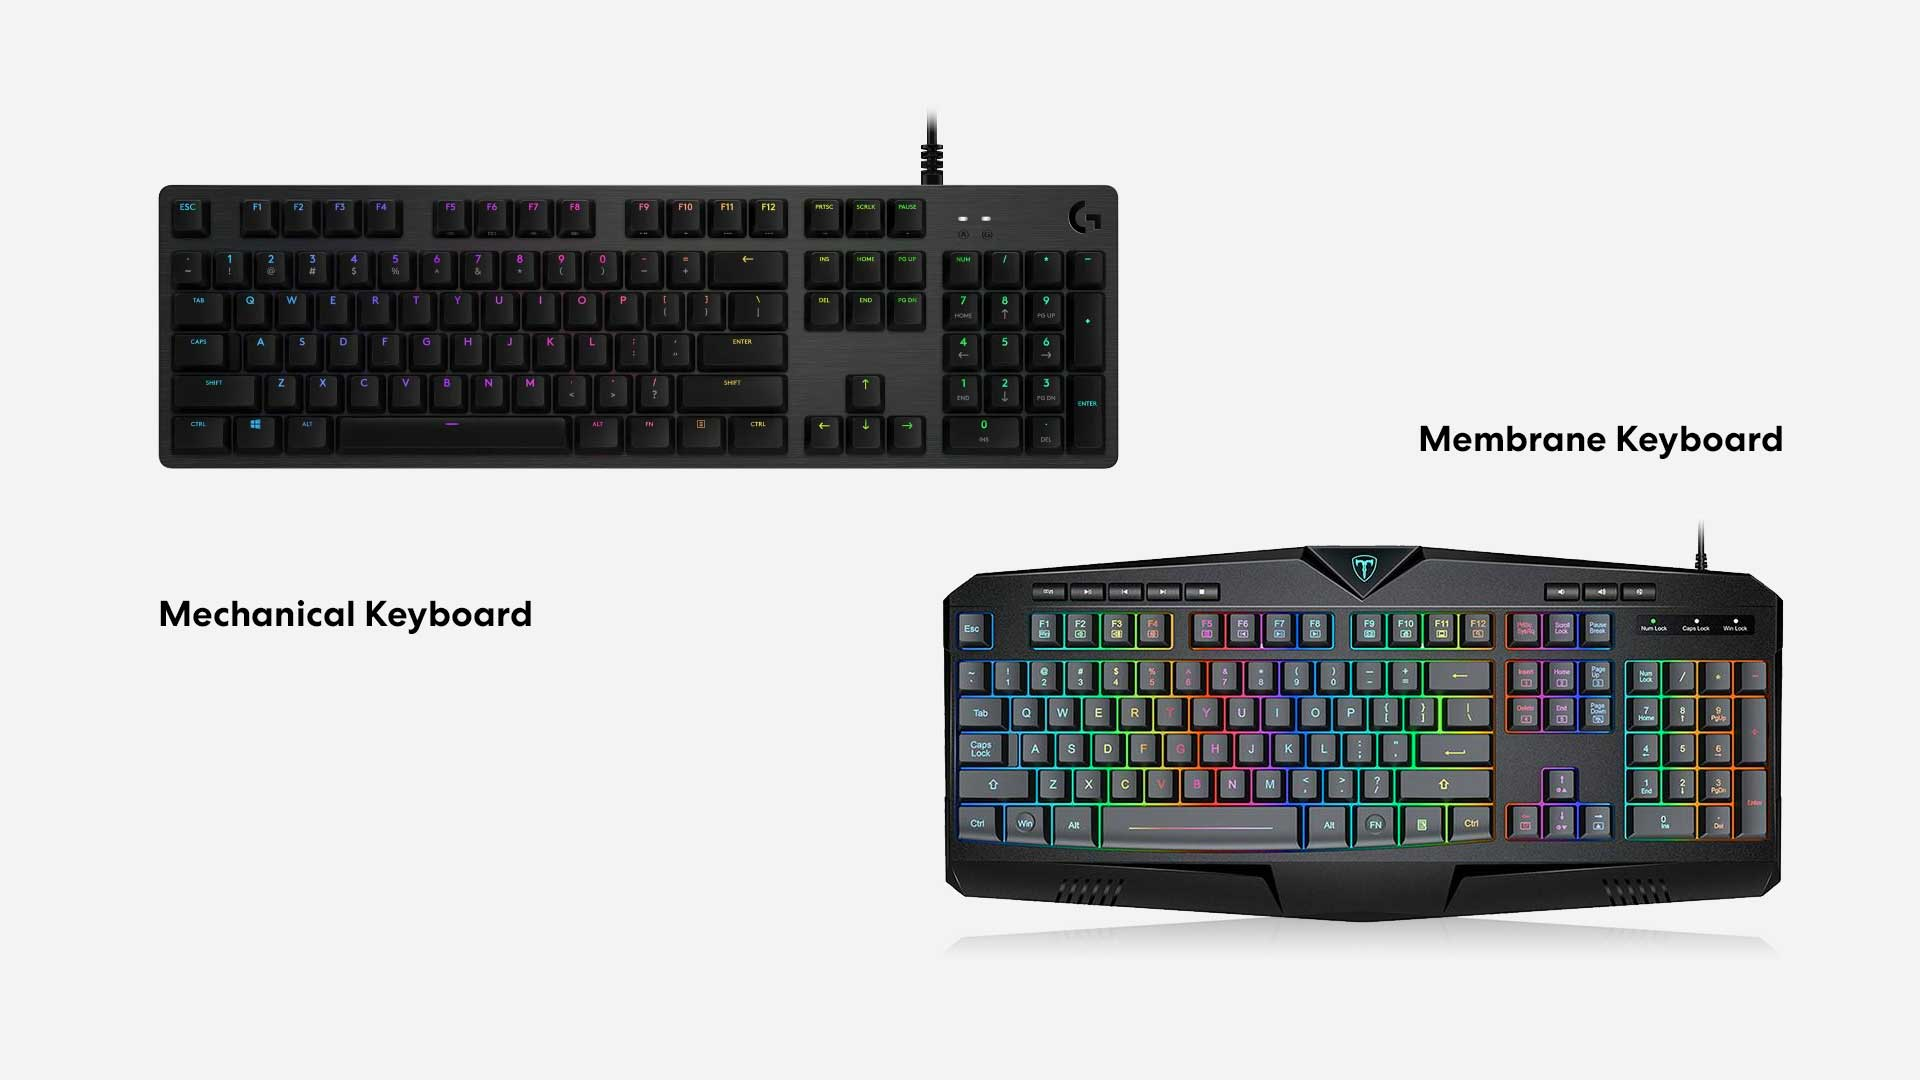 image relates to compare keyboard